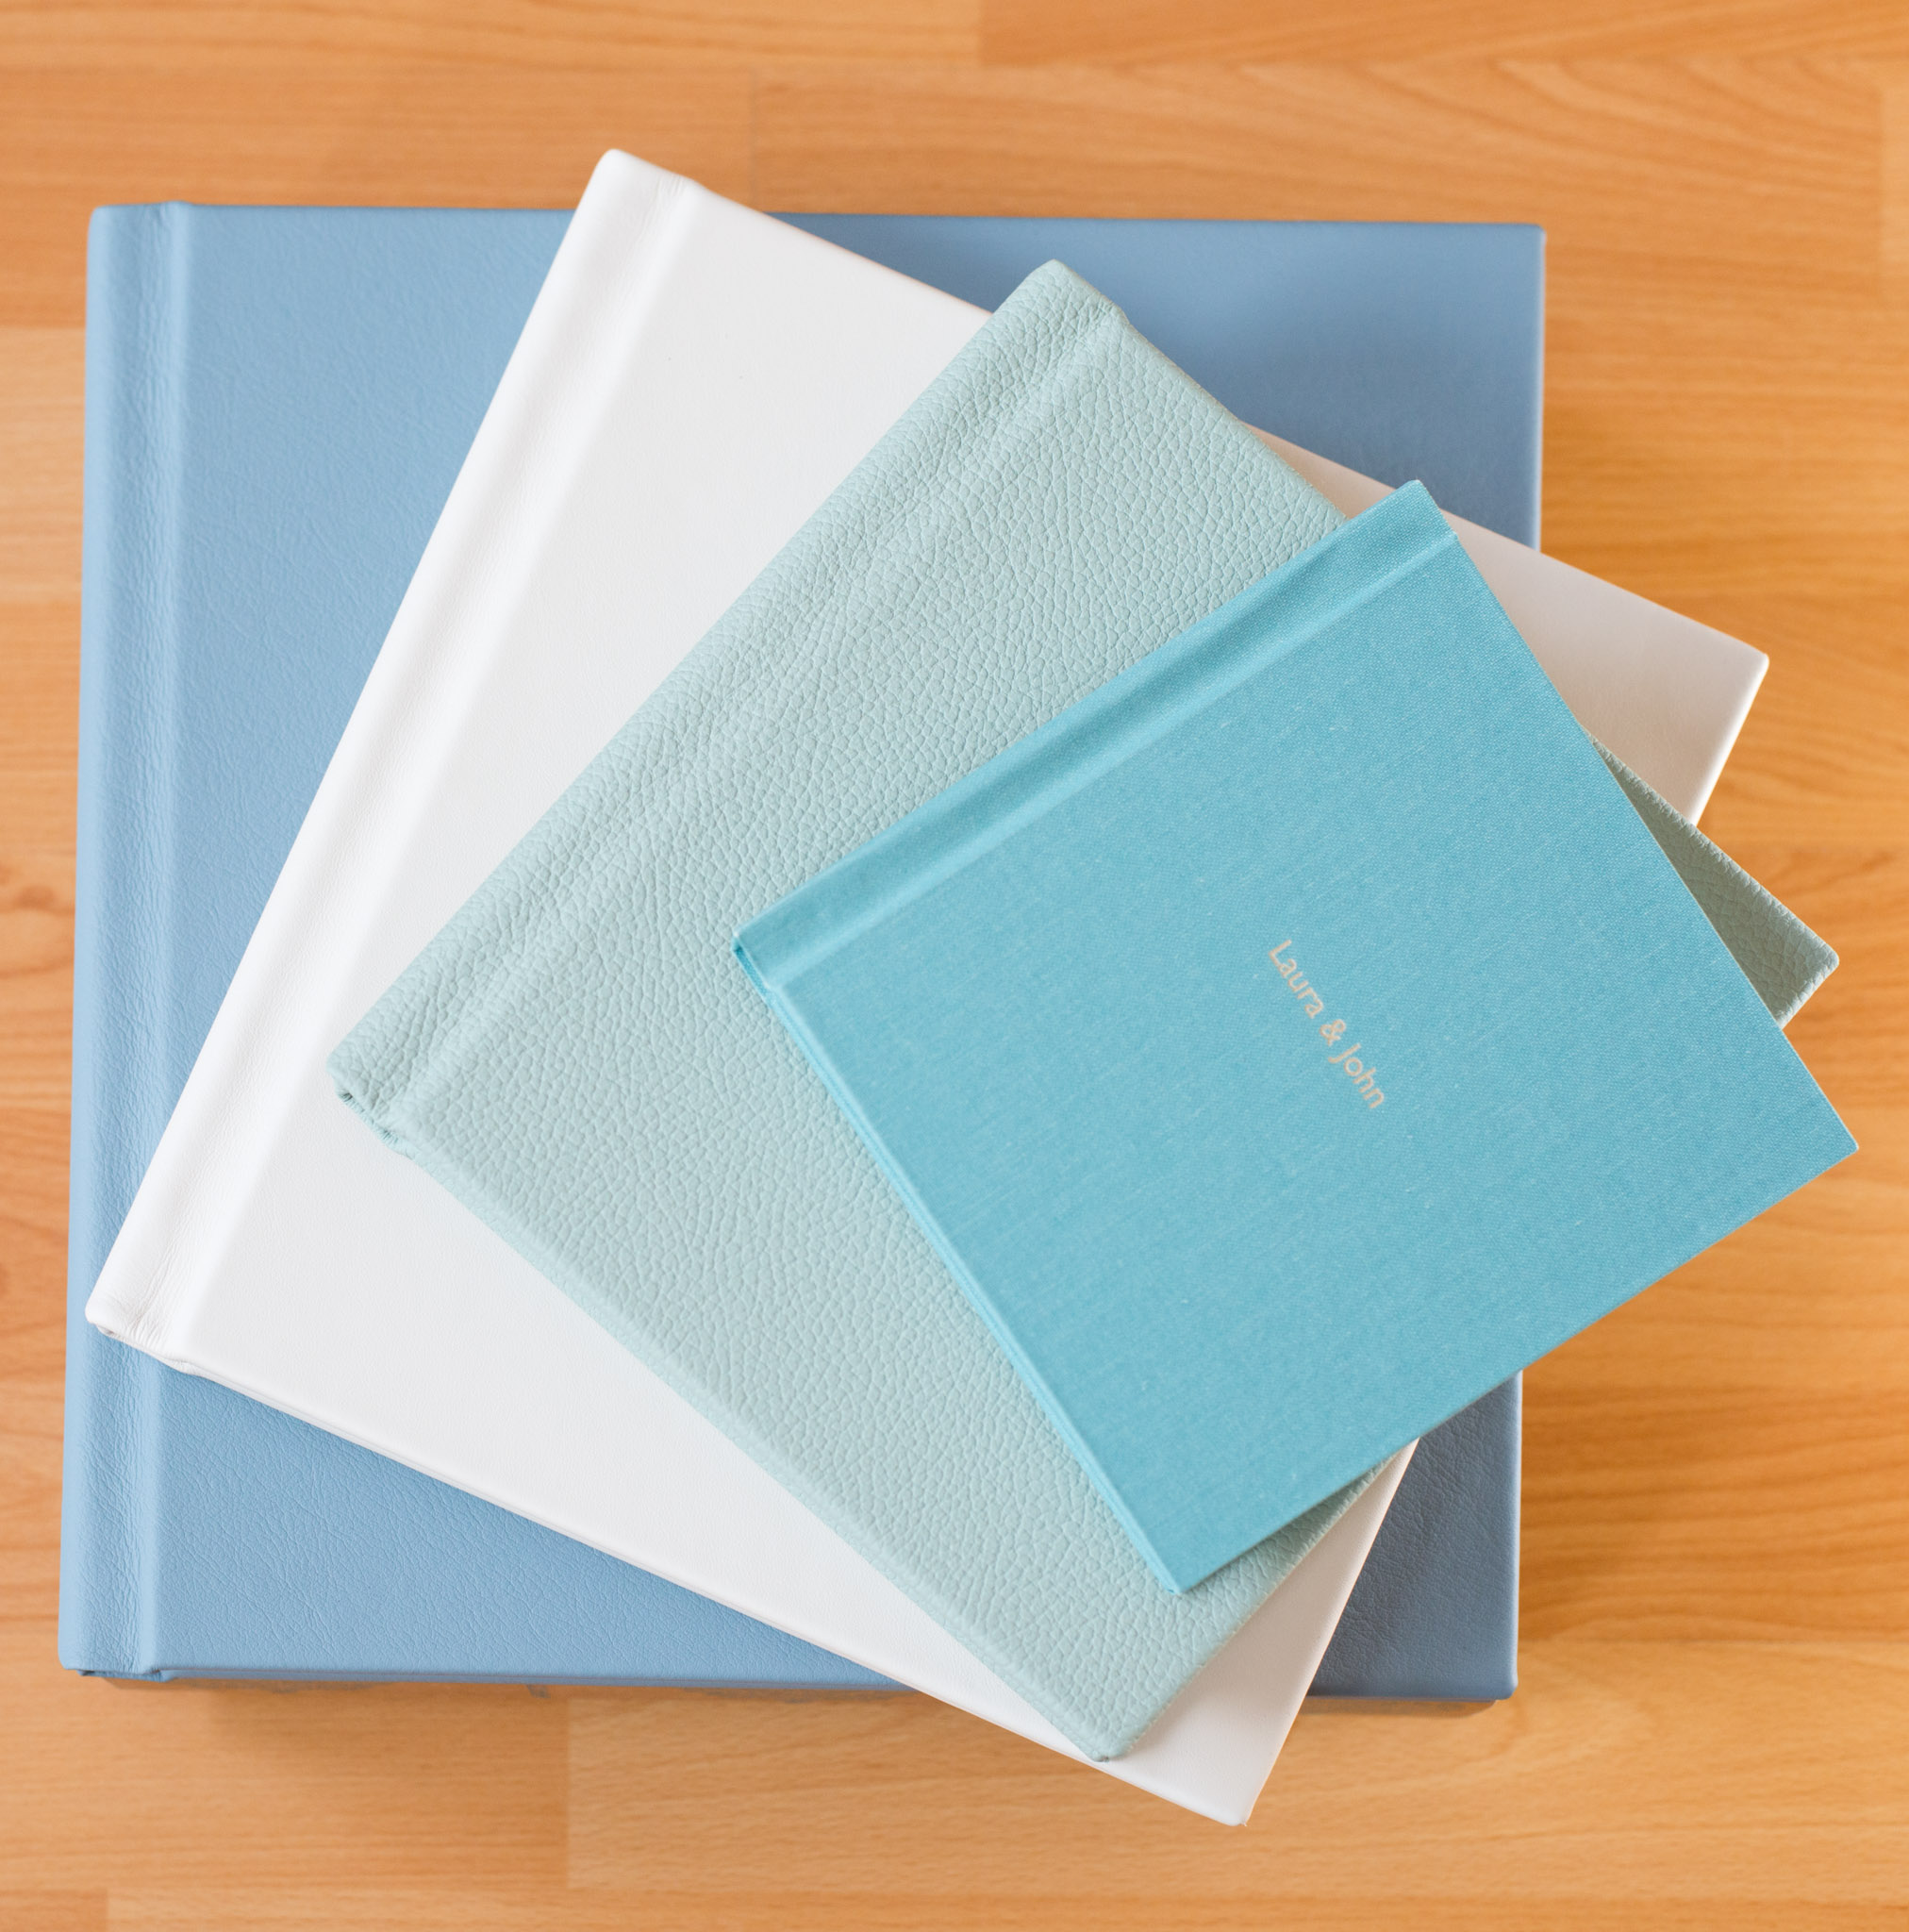 4 fine art print albums in different sizes ranging from 6 x 6 to 12 x 12